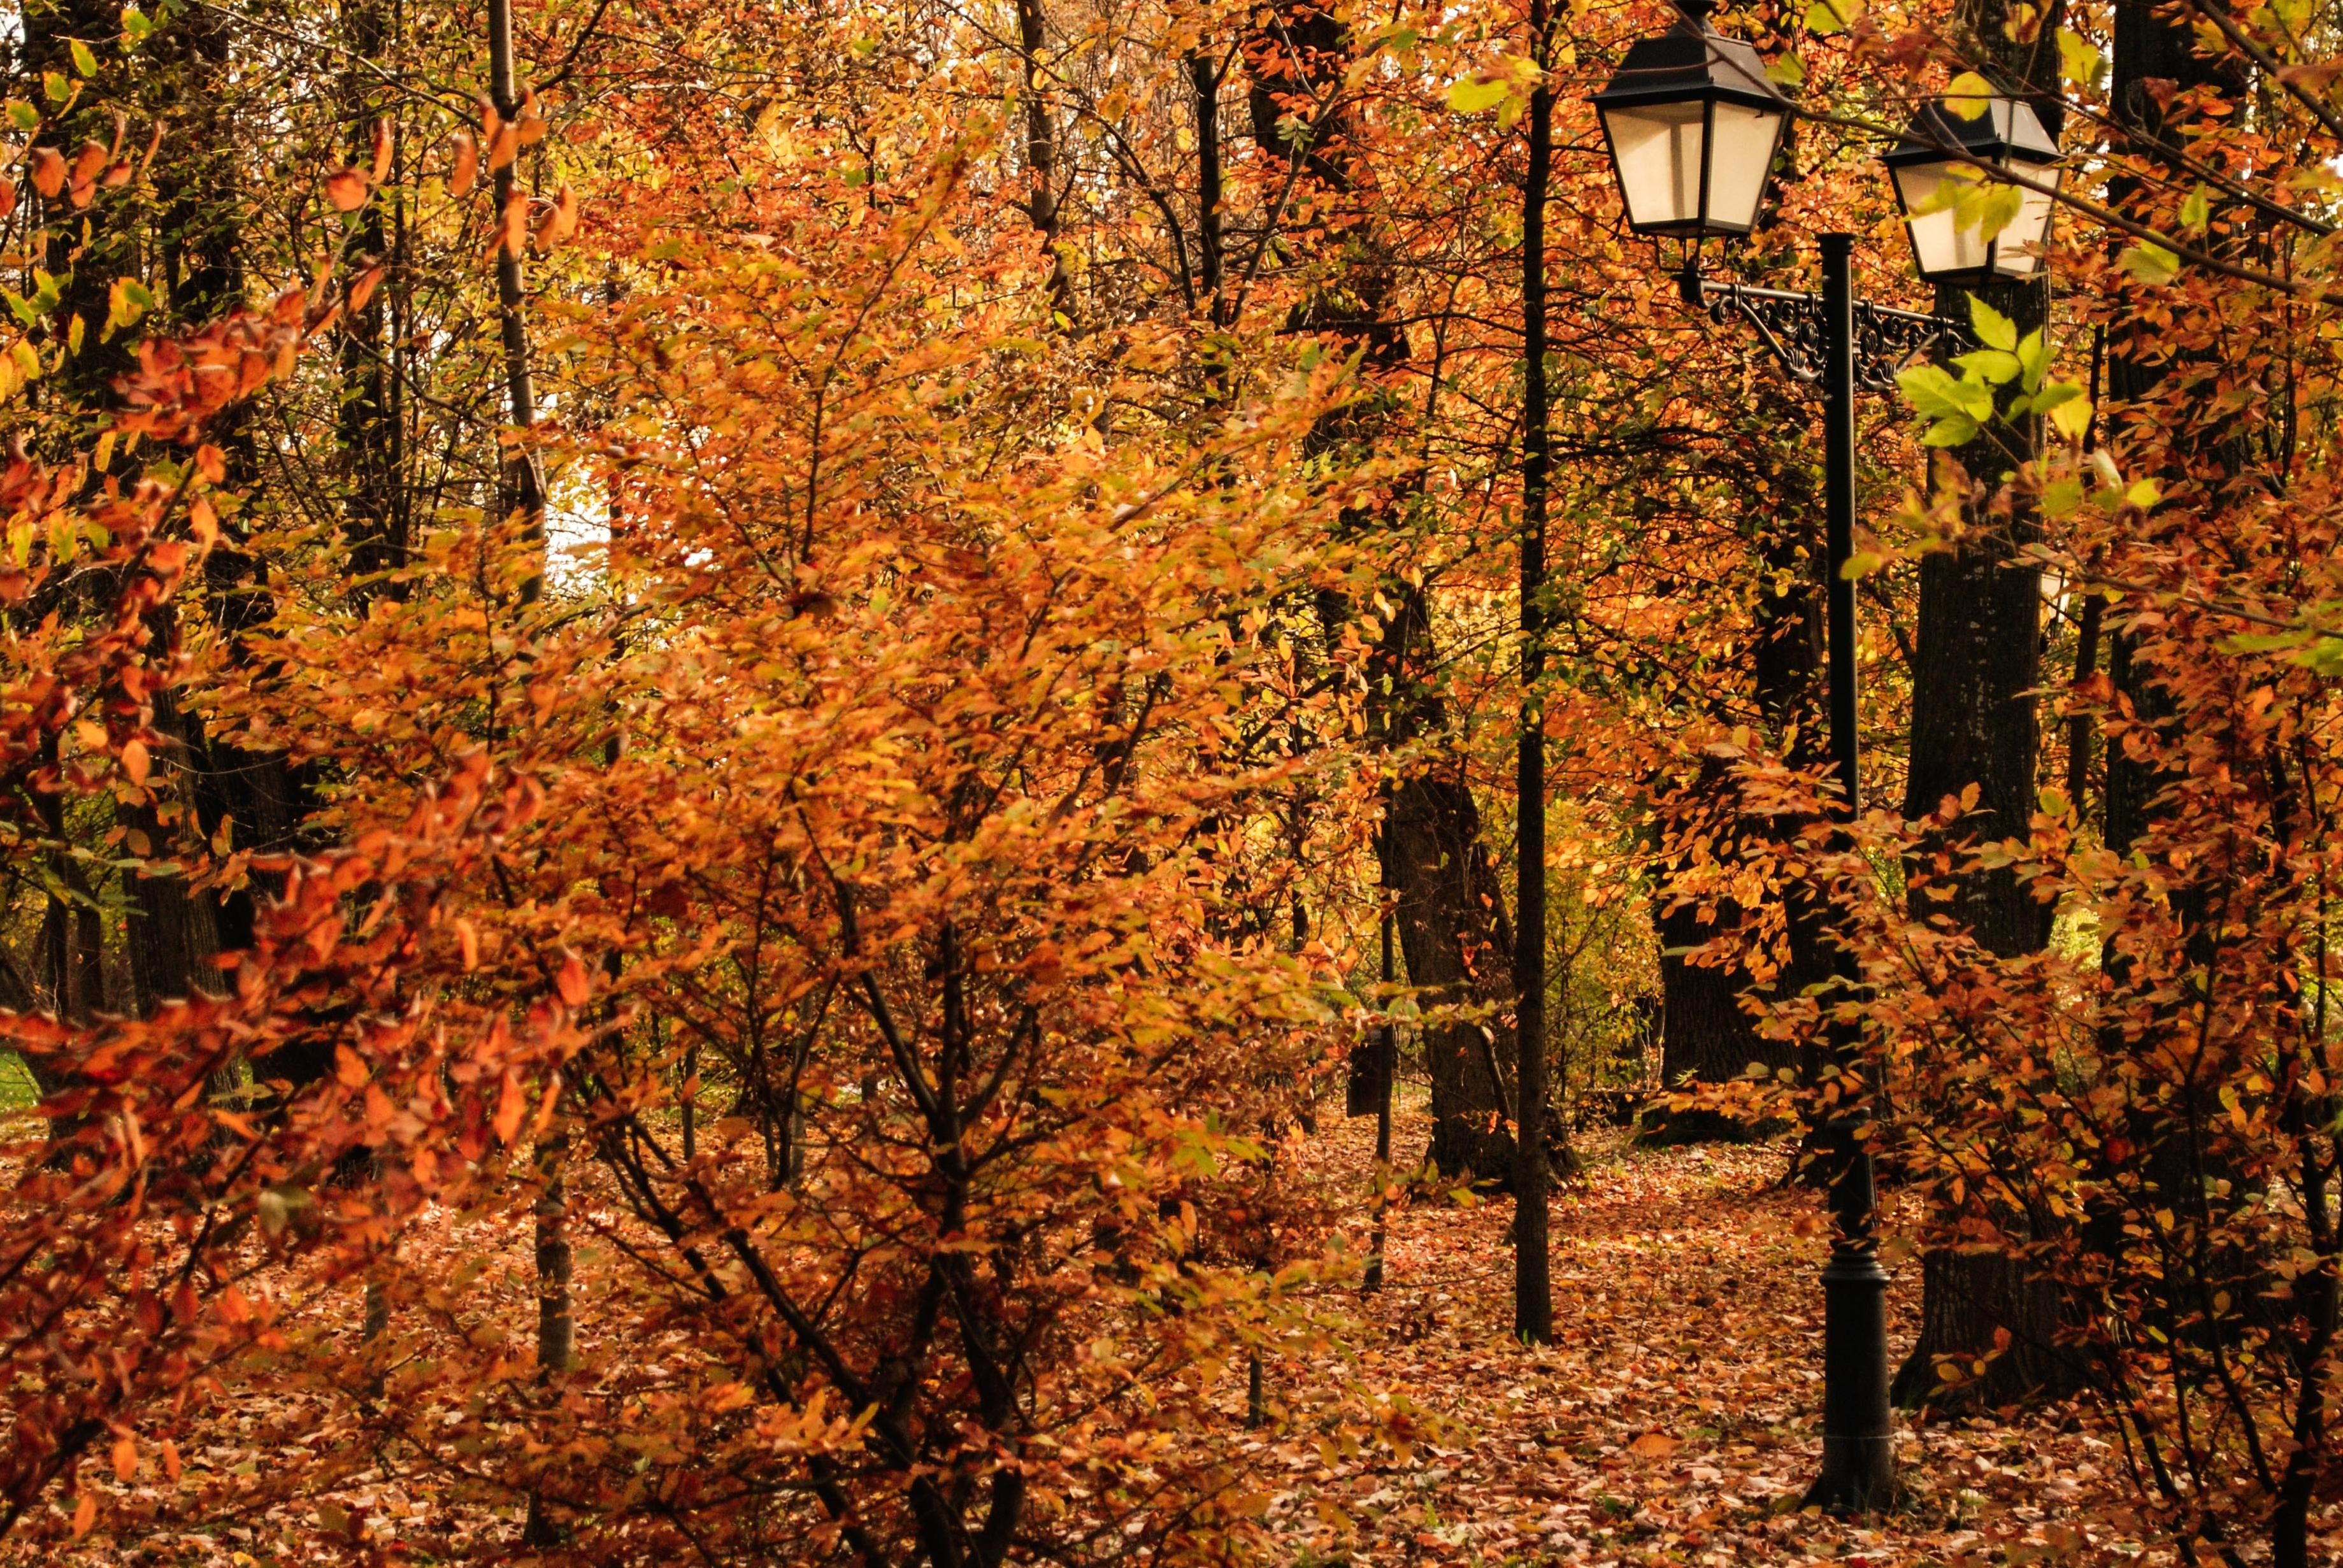 Free Computer Wallpaper Fall Leaves Image Libre Feuille Bois Arbre Nature Paysage